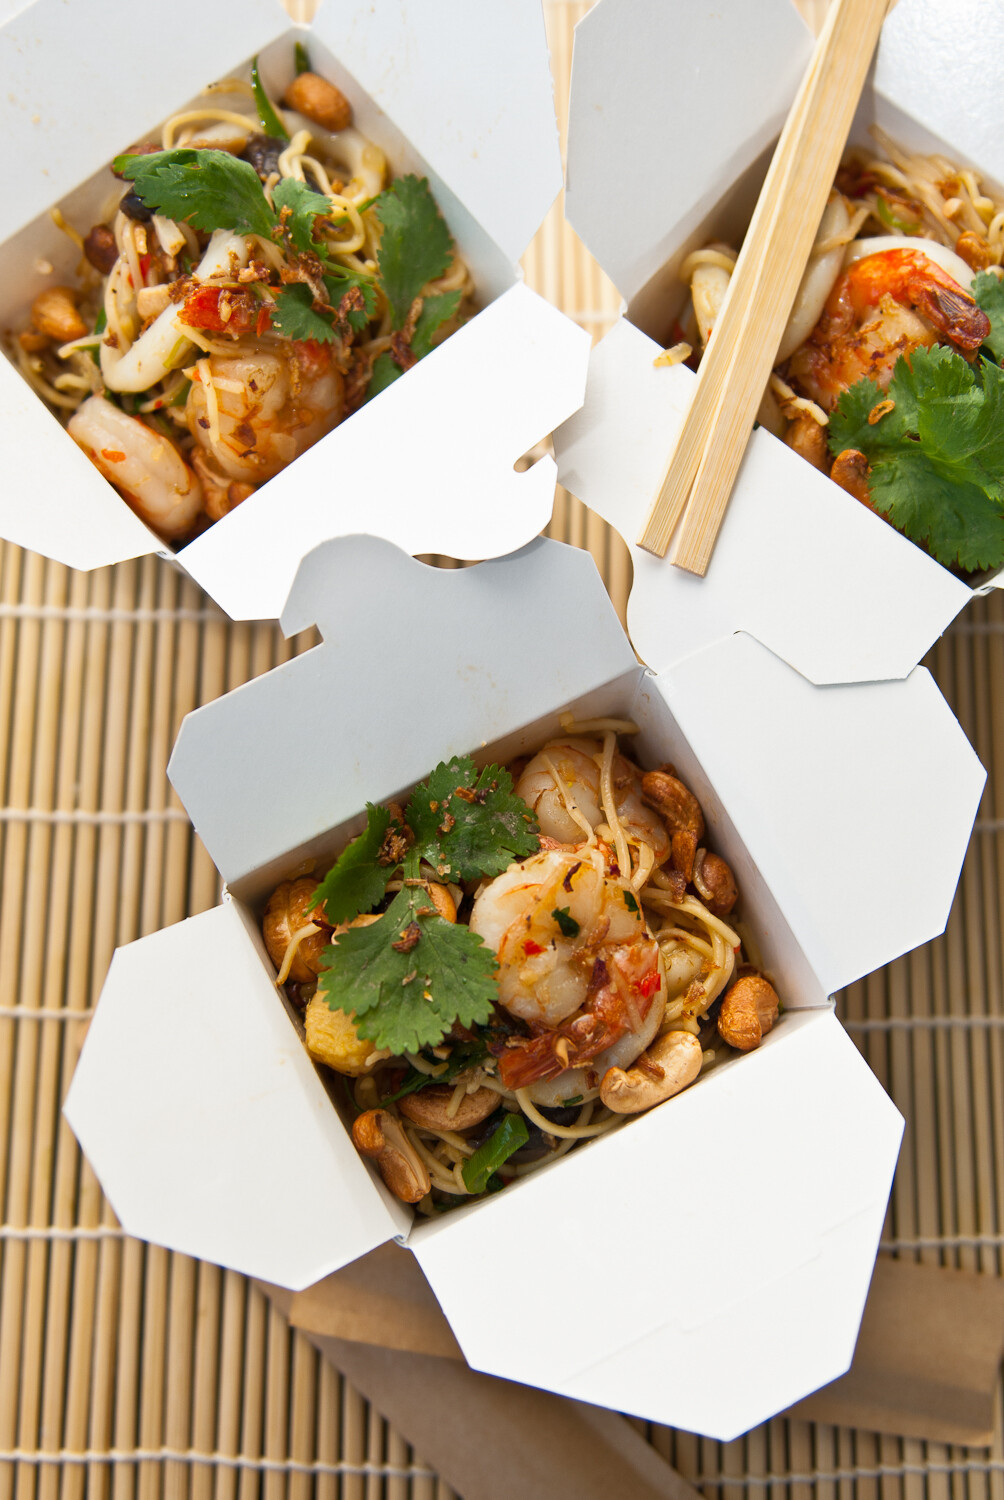 NOODLES WITH PRAWNS AND SALMON